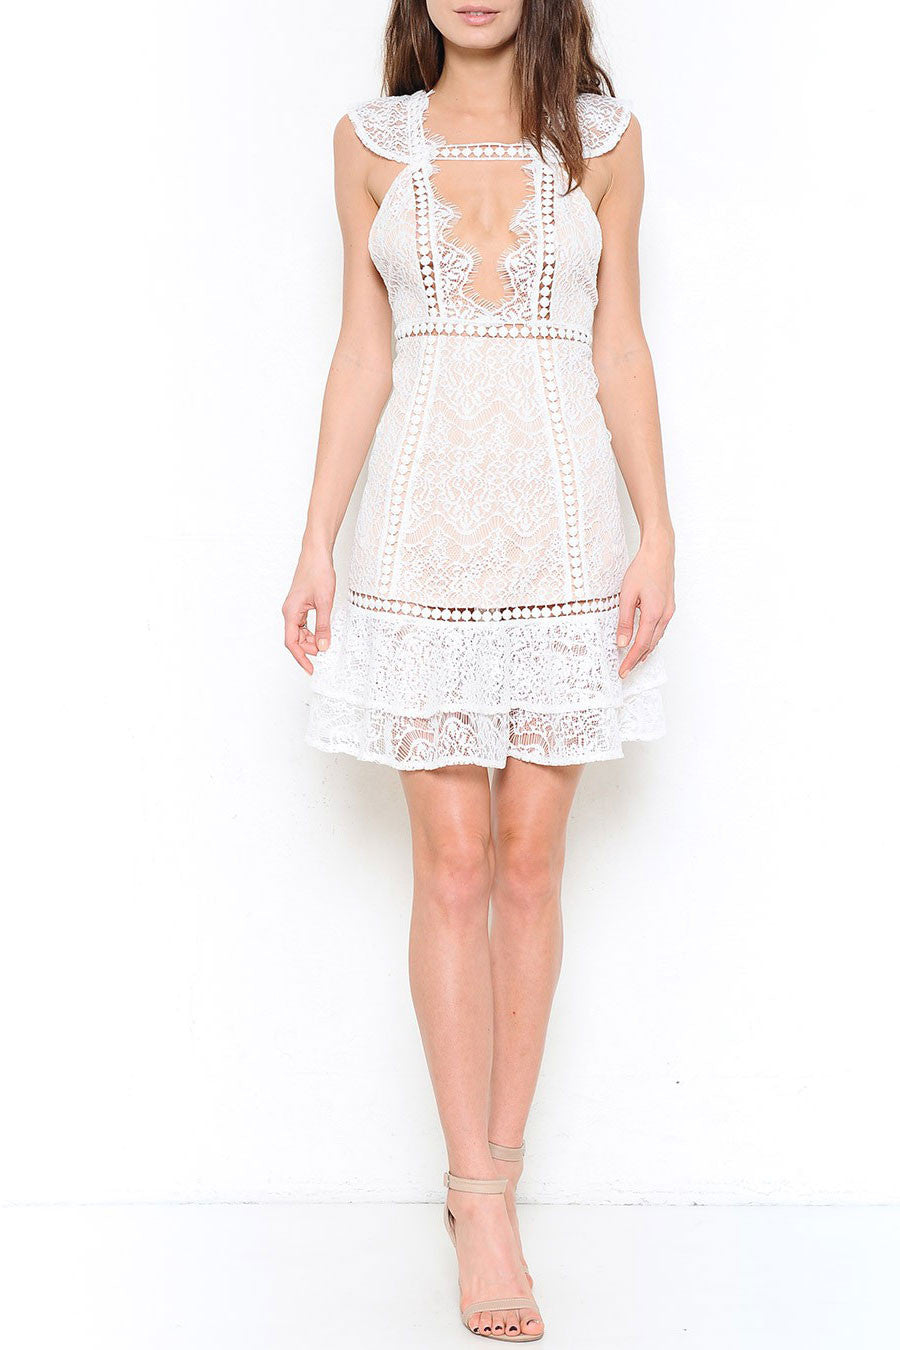 Women's mini, venetian lace casual wedding dress: Guipure capped sleeve little white lace dress. Front view